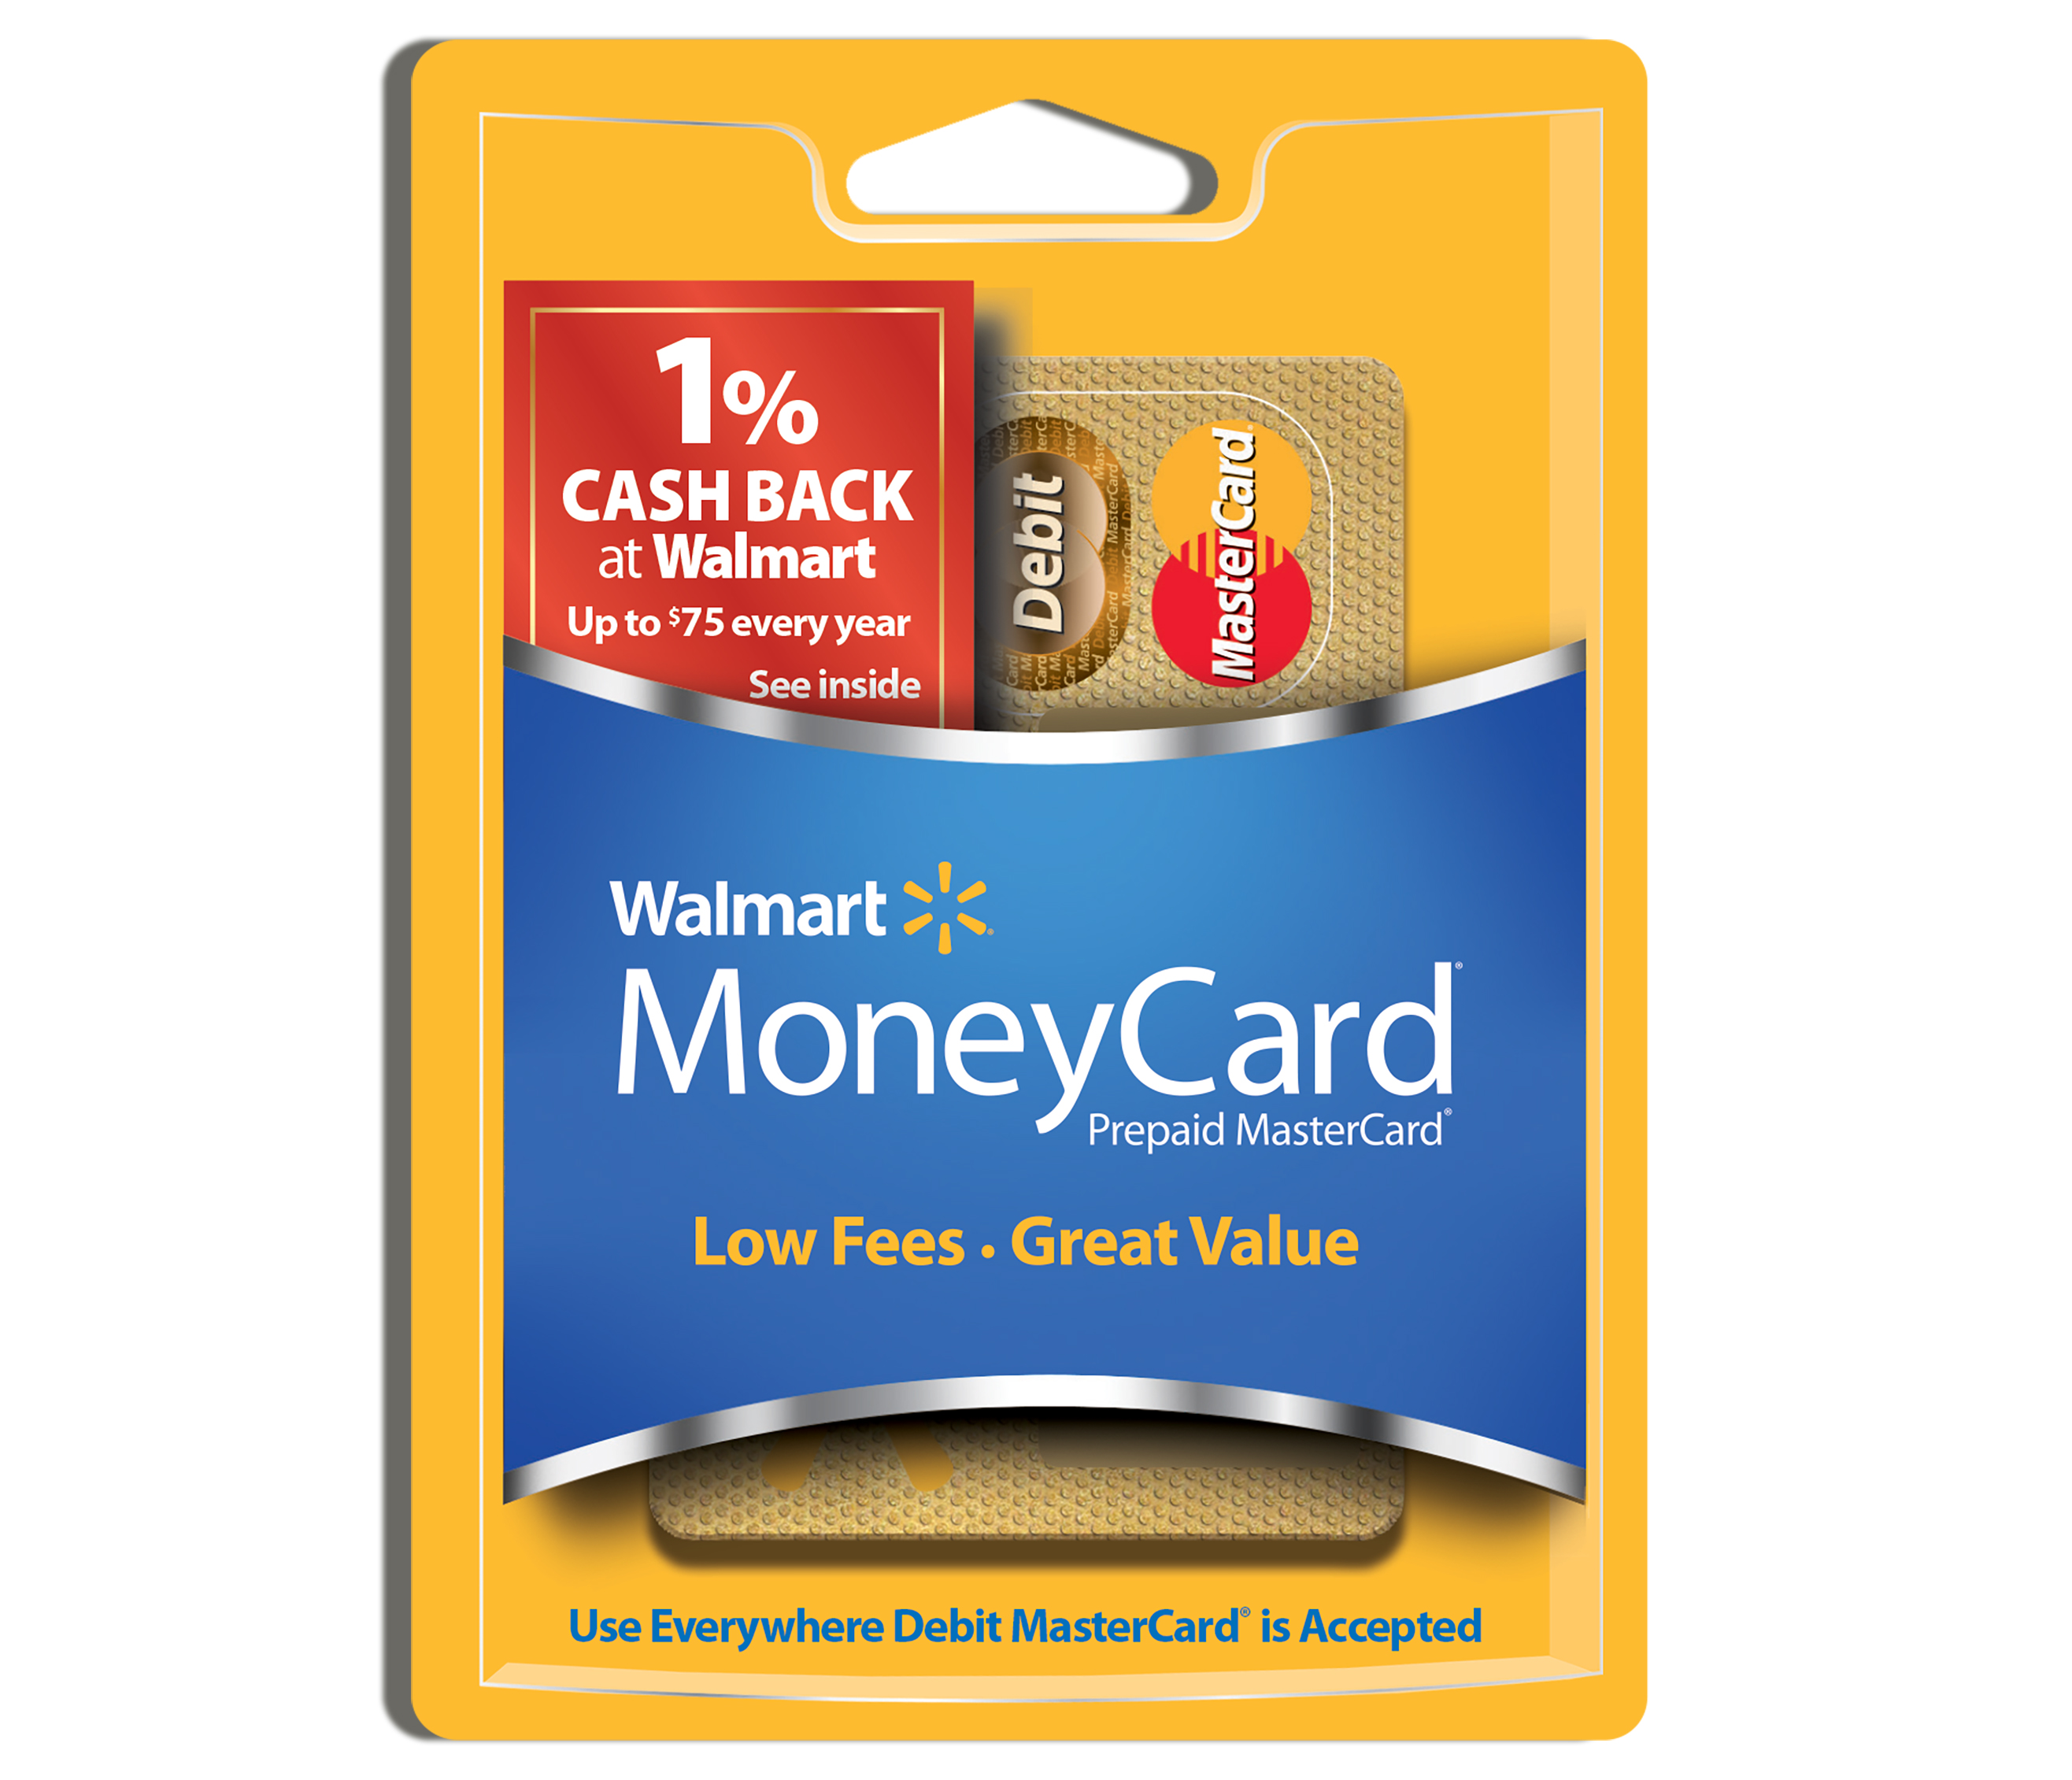 How to Check the Balance on a Walmart MoneyCard